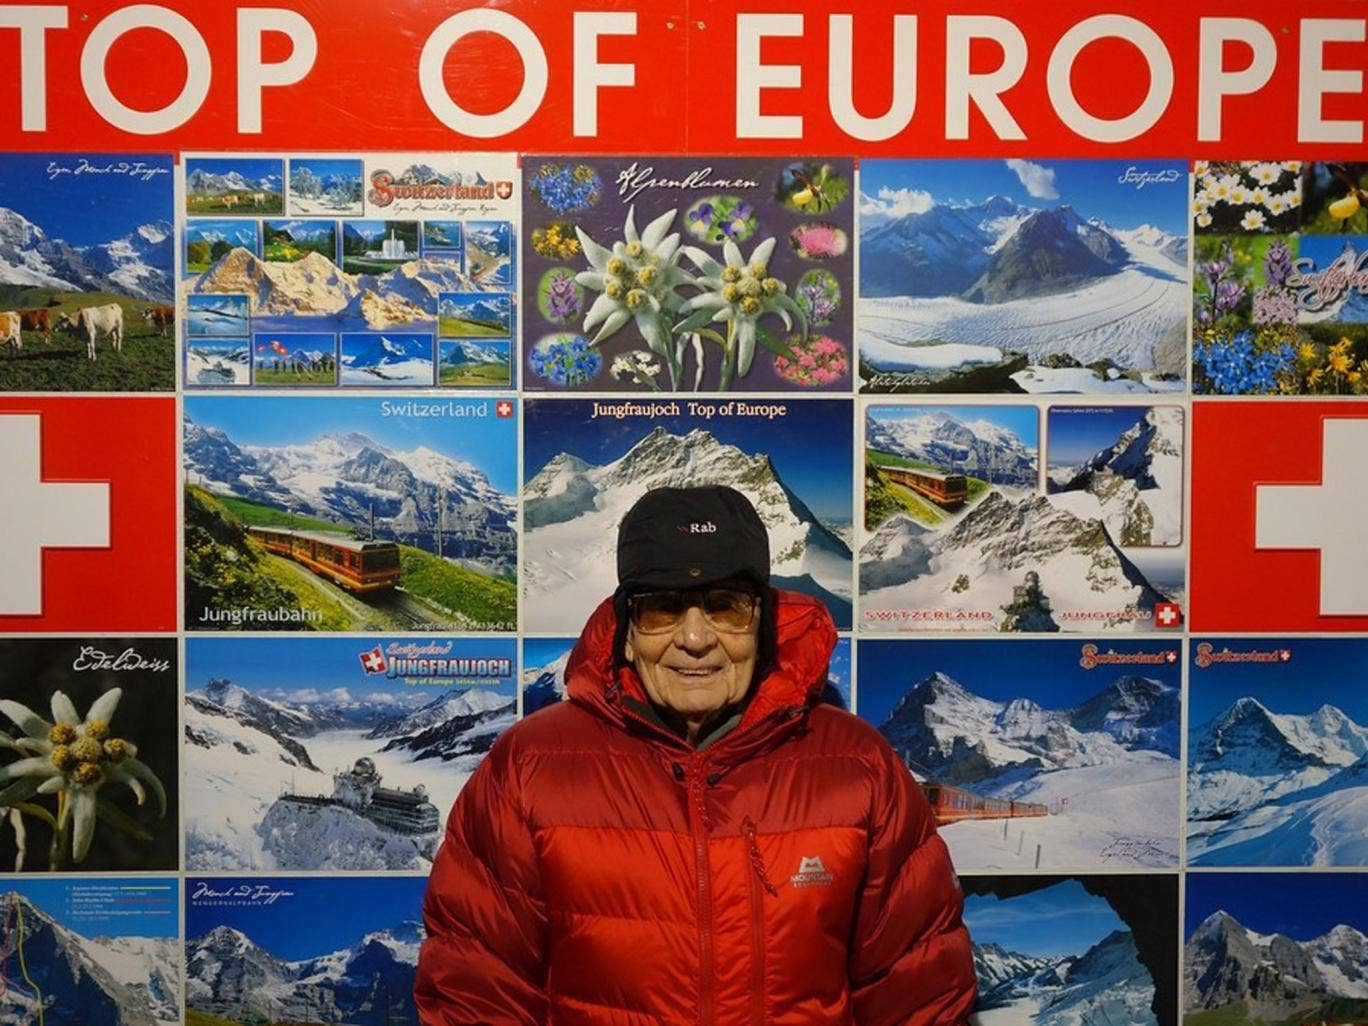 George White ascending the Eiger mountain – or at least part of it – in Switzerland